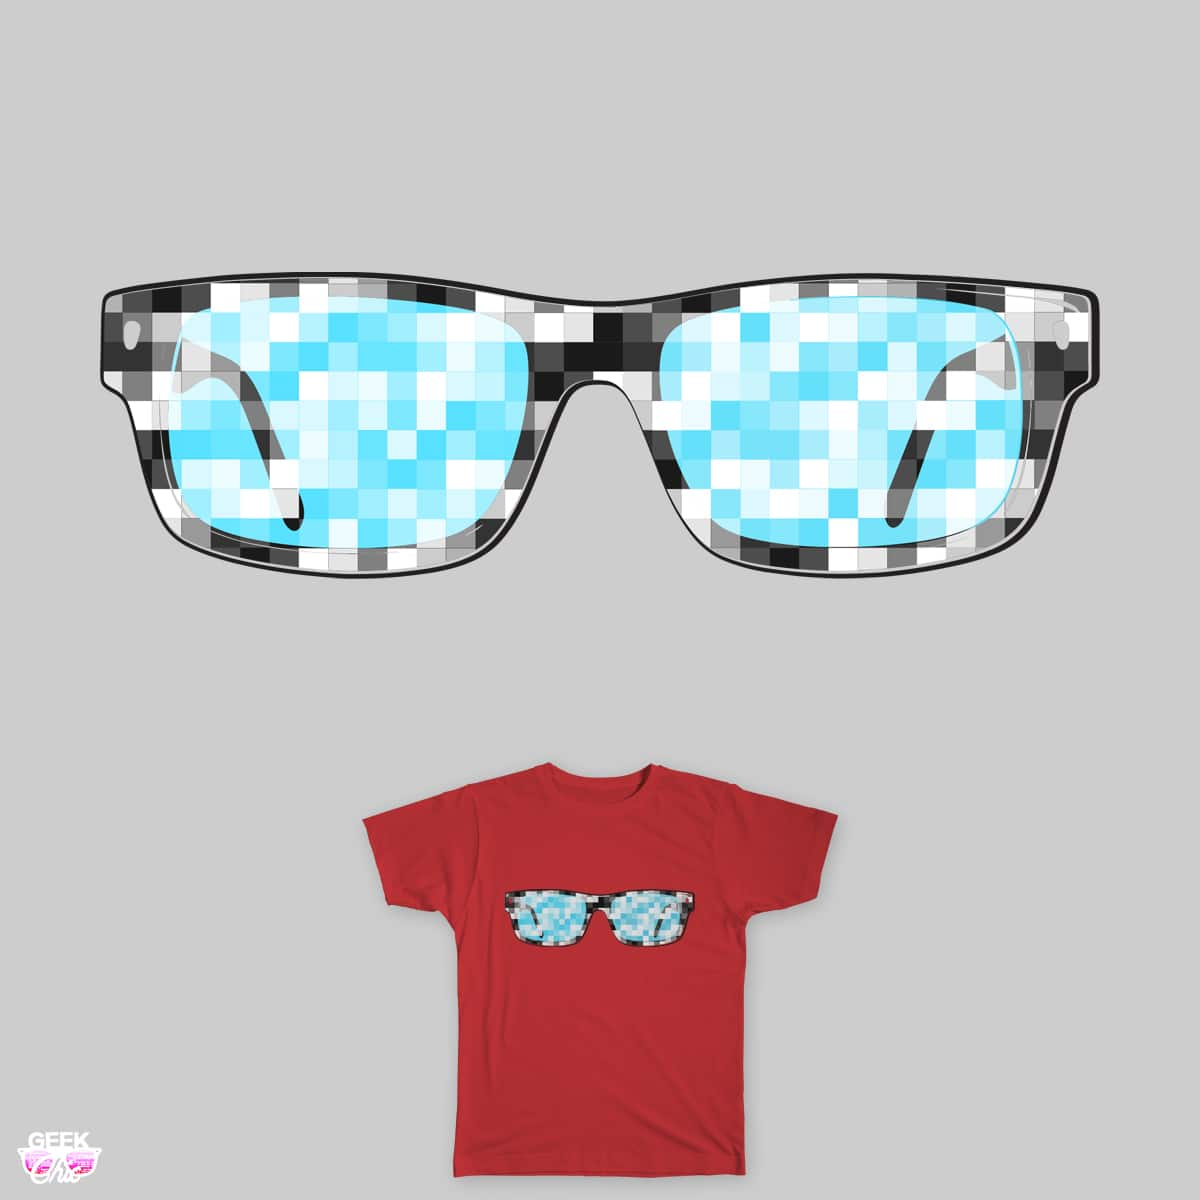 Pixeleted by yanmos on Threadless